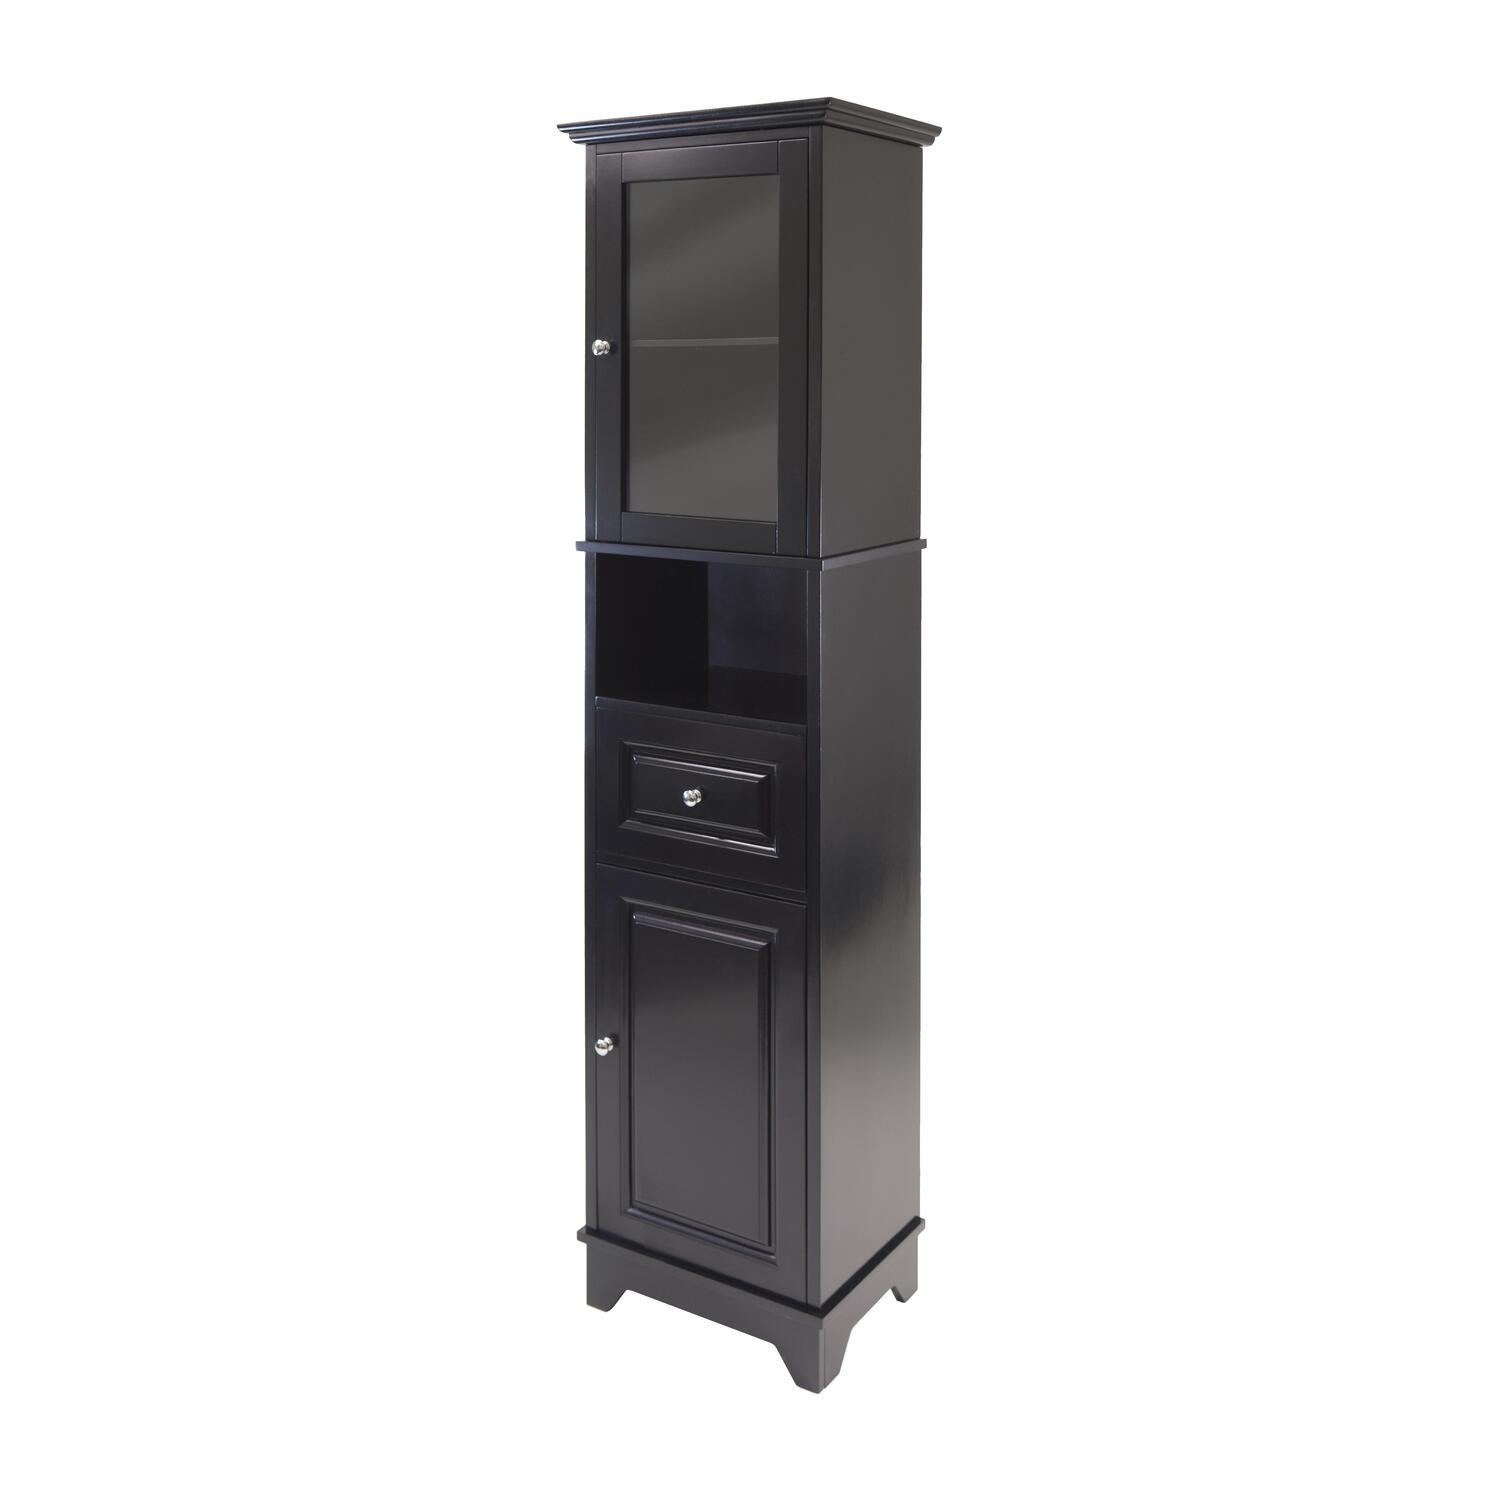 Alps tall cabinet with glass door and drawer ojcommerce for Tall kitchen cabinets